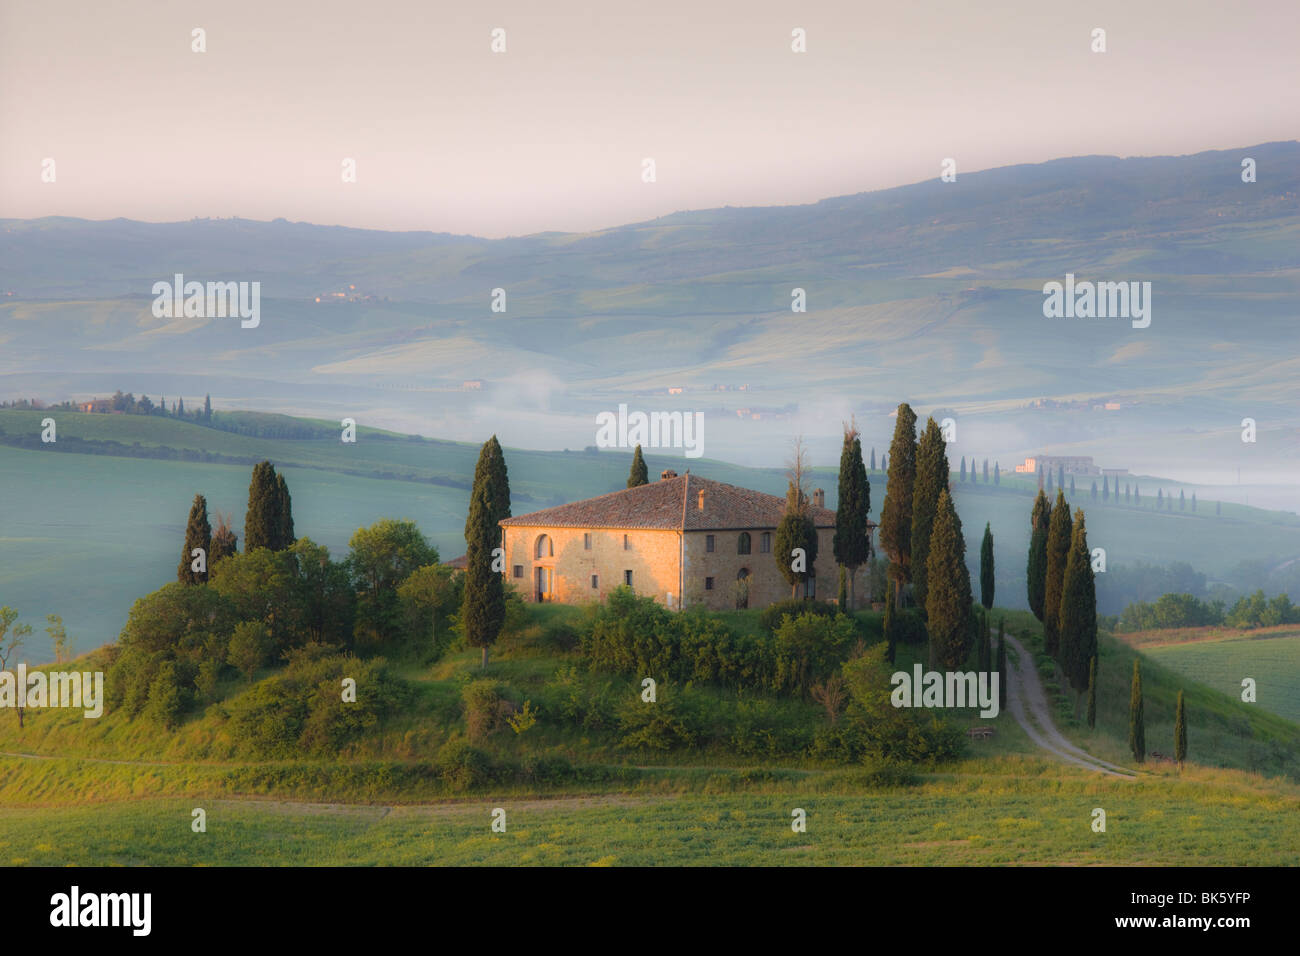 Misty dawn view across Val d'Orcia, UNESCO World Heritage Site, San Quirico d'Orcia, near Pienza, Tuscany, Italy Stock Photo